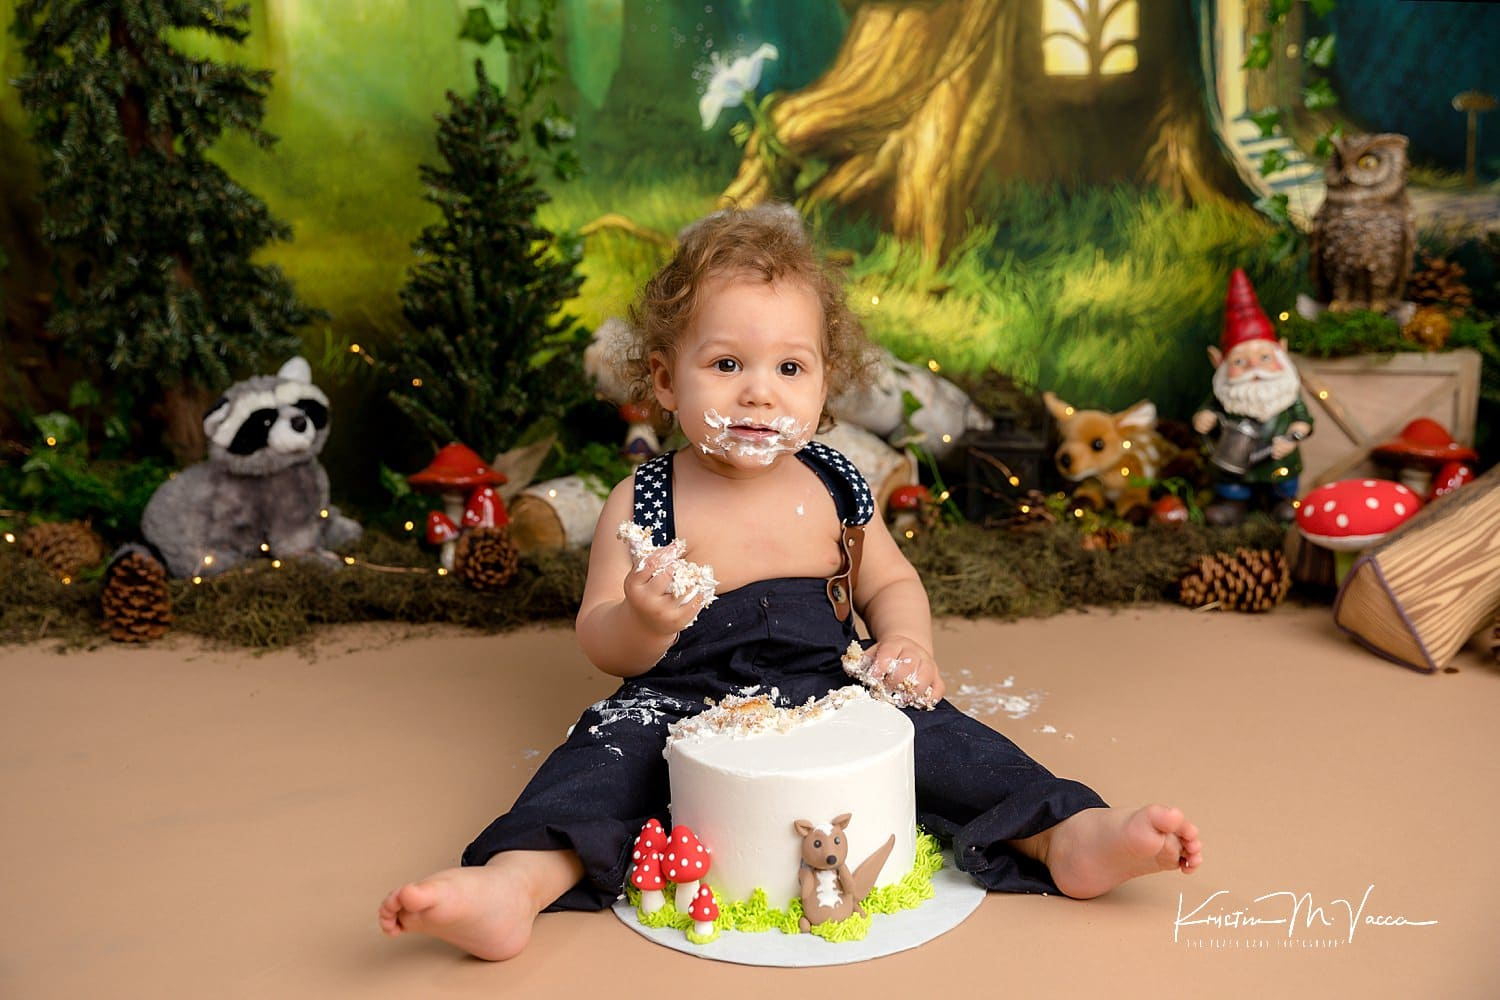 Photos from Milan's enchanted forest cake smash by Avon, CT photographer The Flash Lady Photography